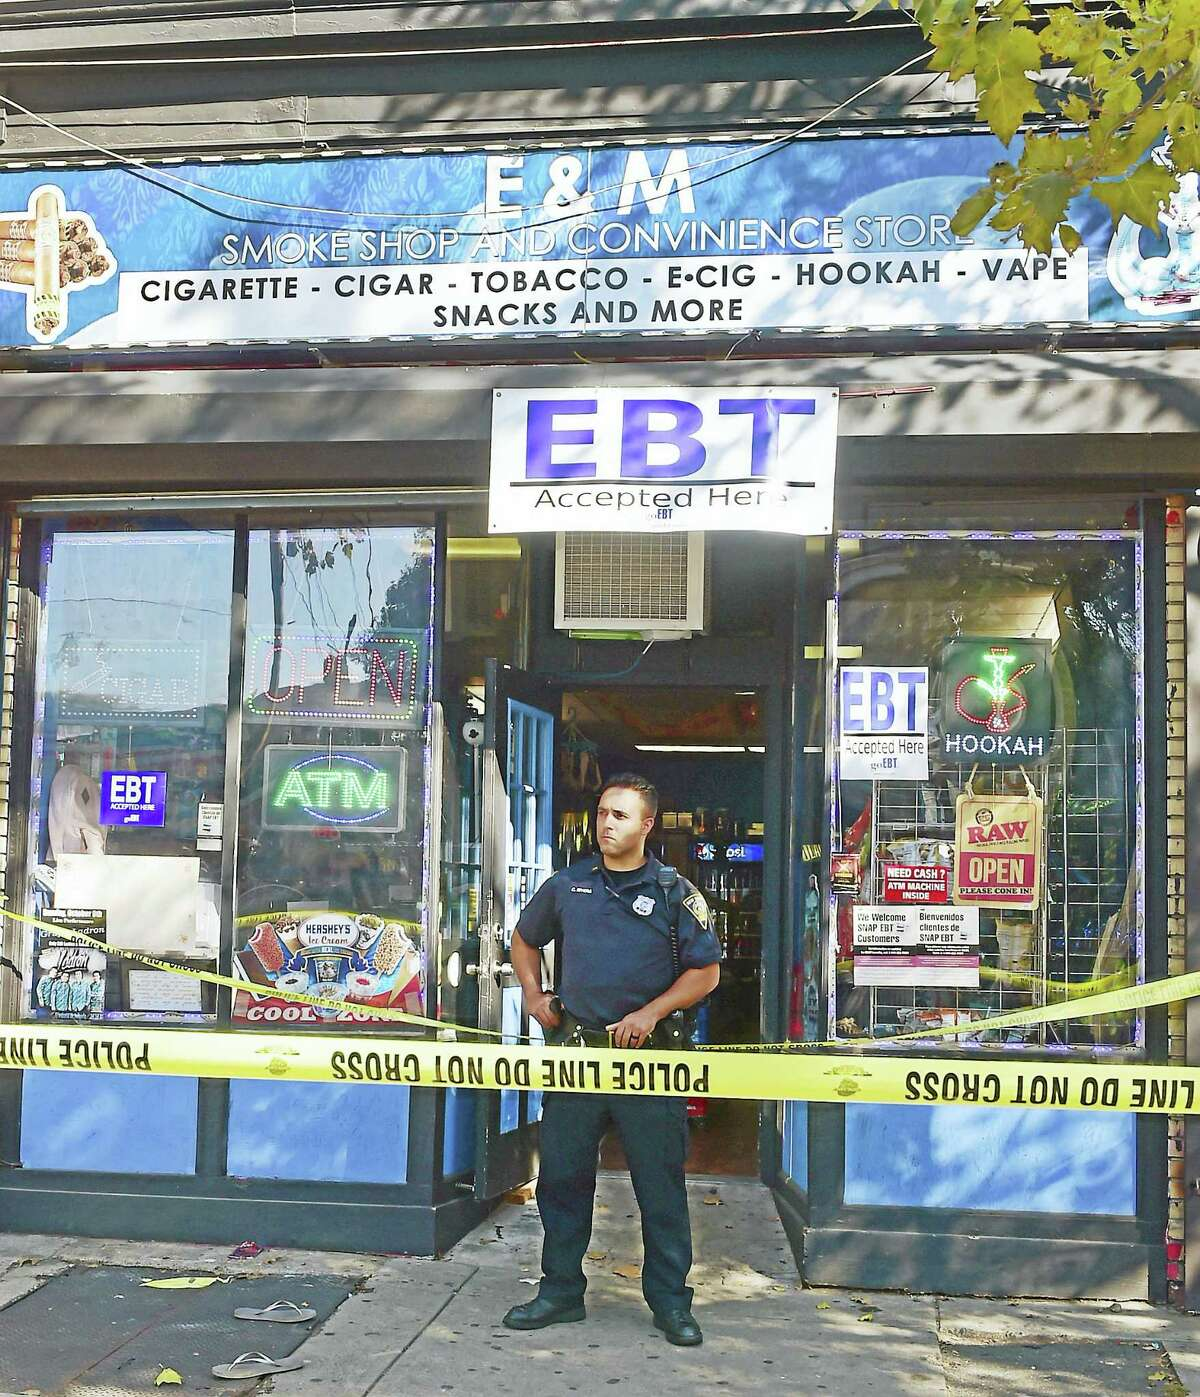 A New Haven police officer stands in front of the E&M Smoke Shop and Convenience Store at 545 Ferry St. in New Haven where Muhanad Jawad, 21, was shot and killed Tuesday afternoon.